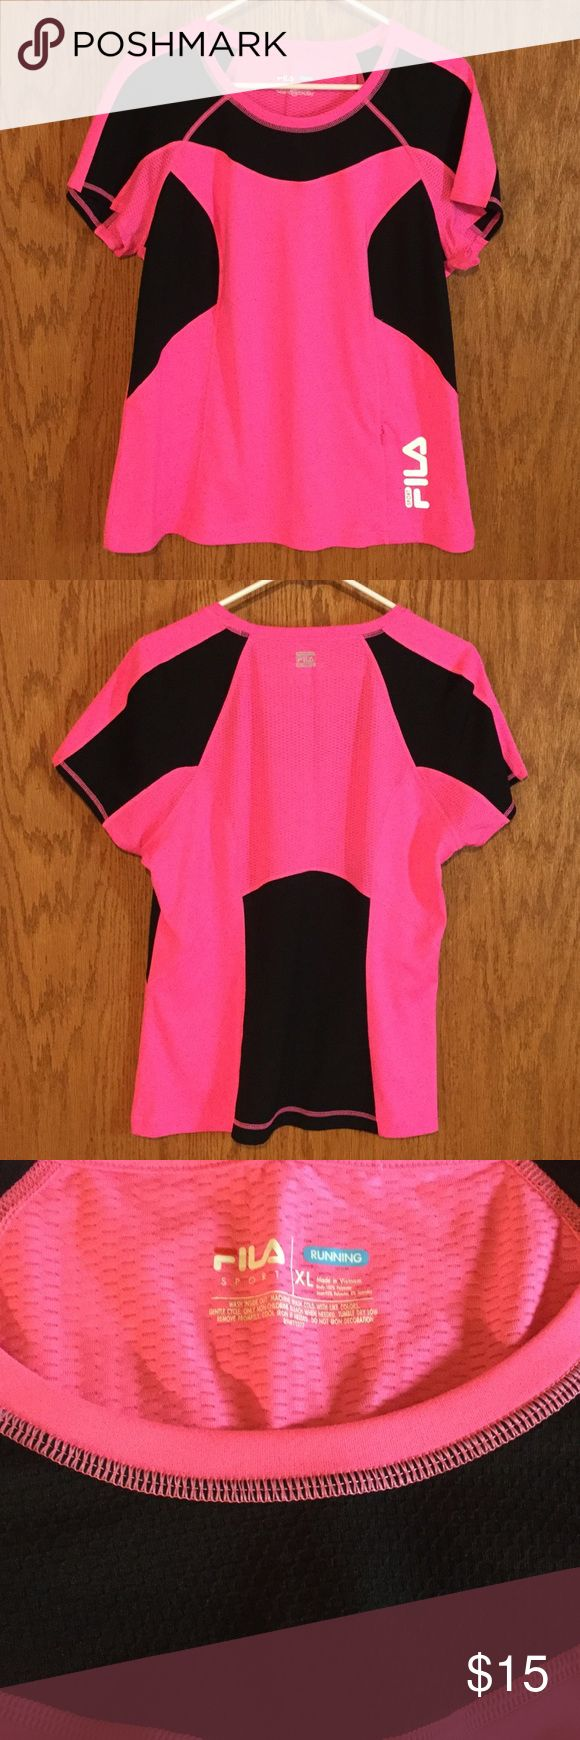 Fila Sport Running Top Fila Sport Cap Sleeve Running Top in Hot Pink and Black.  Zipper storage pocket on left front bottom.  Meshing in upper back and armpits of top.  XL.  Made in Vietnam of 100% Polyester.  Washer and Dryer safe.  Only worn once.  Very clean. Fila Tops